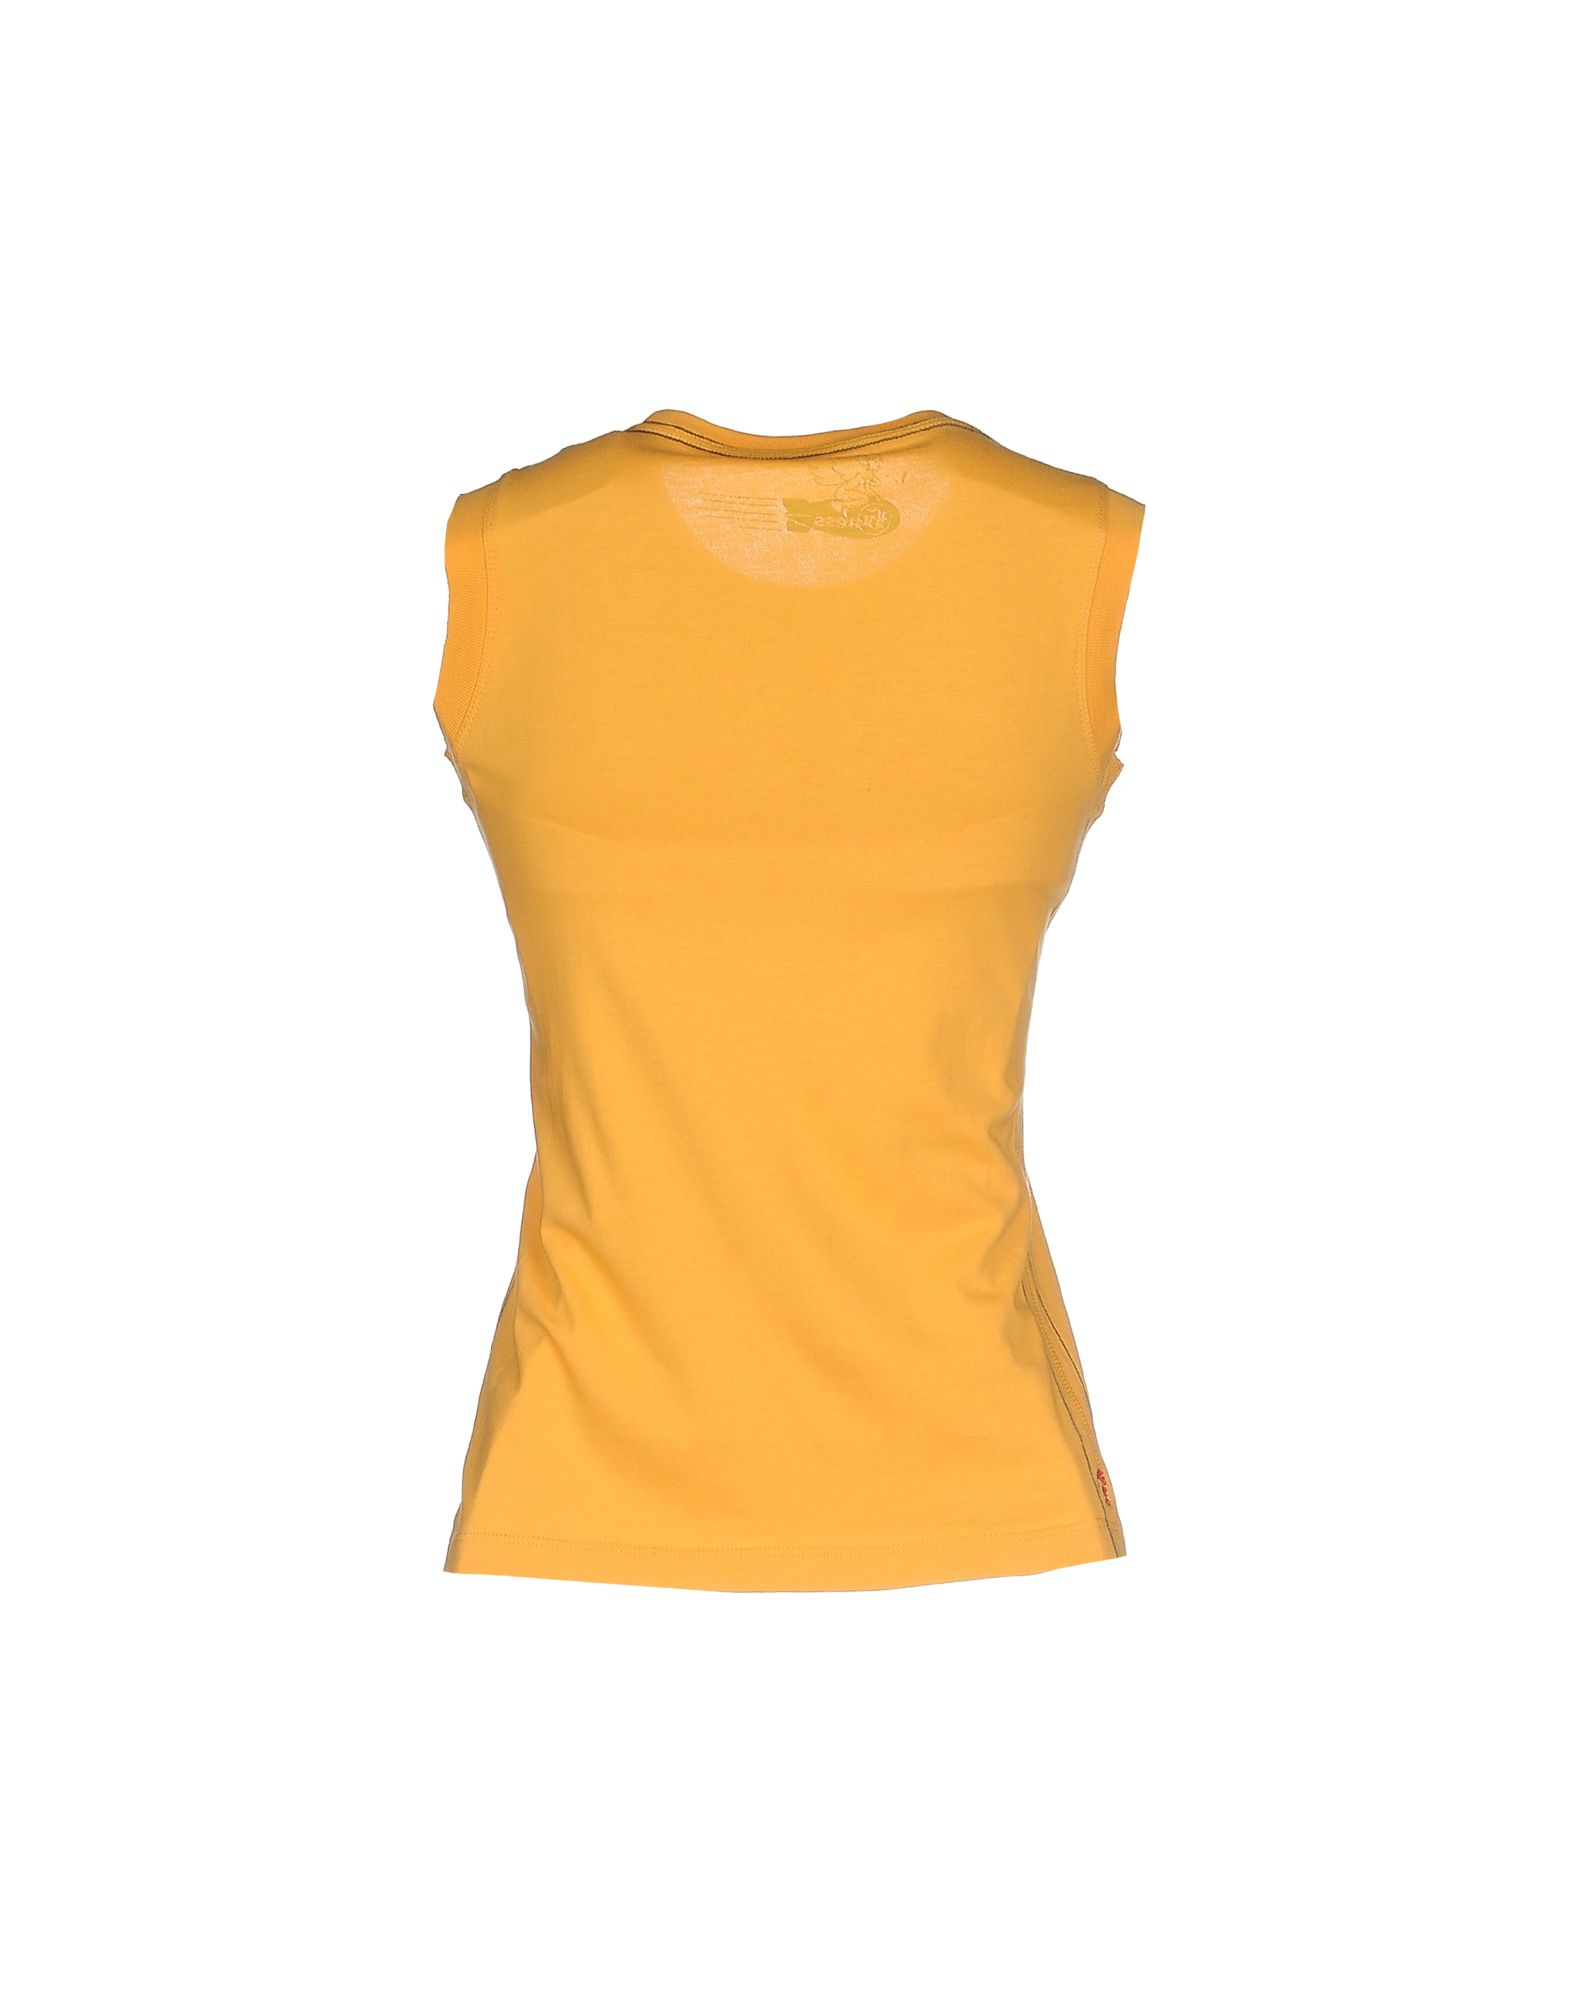 lyst guess t shirt in yellow. Black Bedroom Furniture Sets. Home Design Ideas